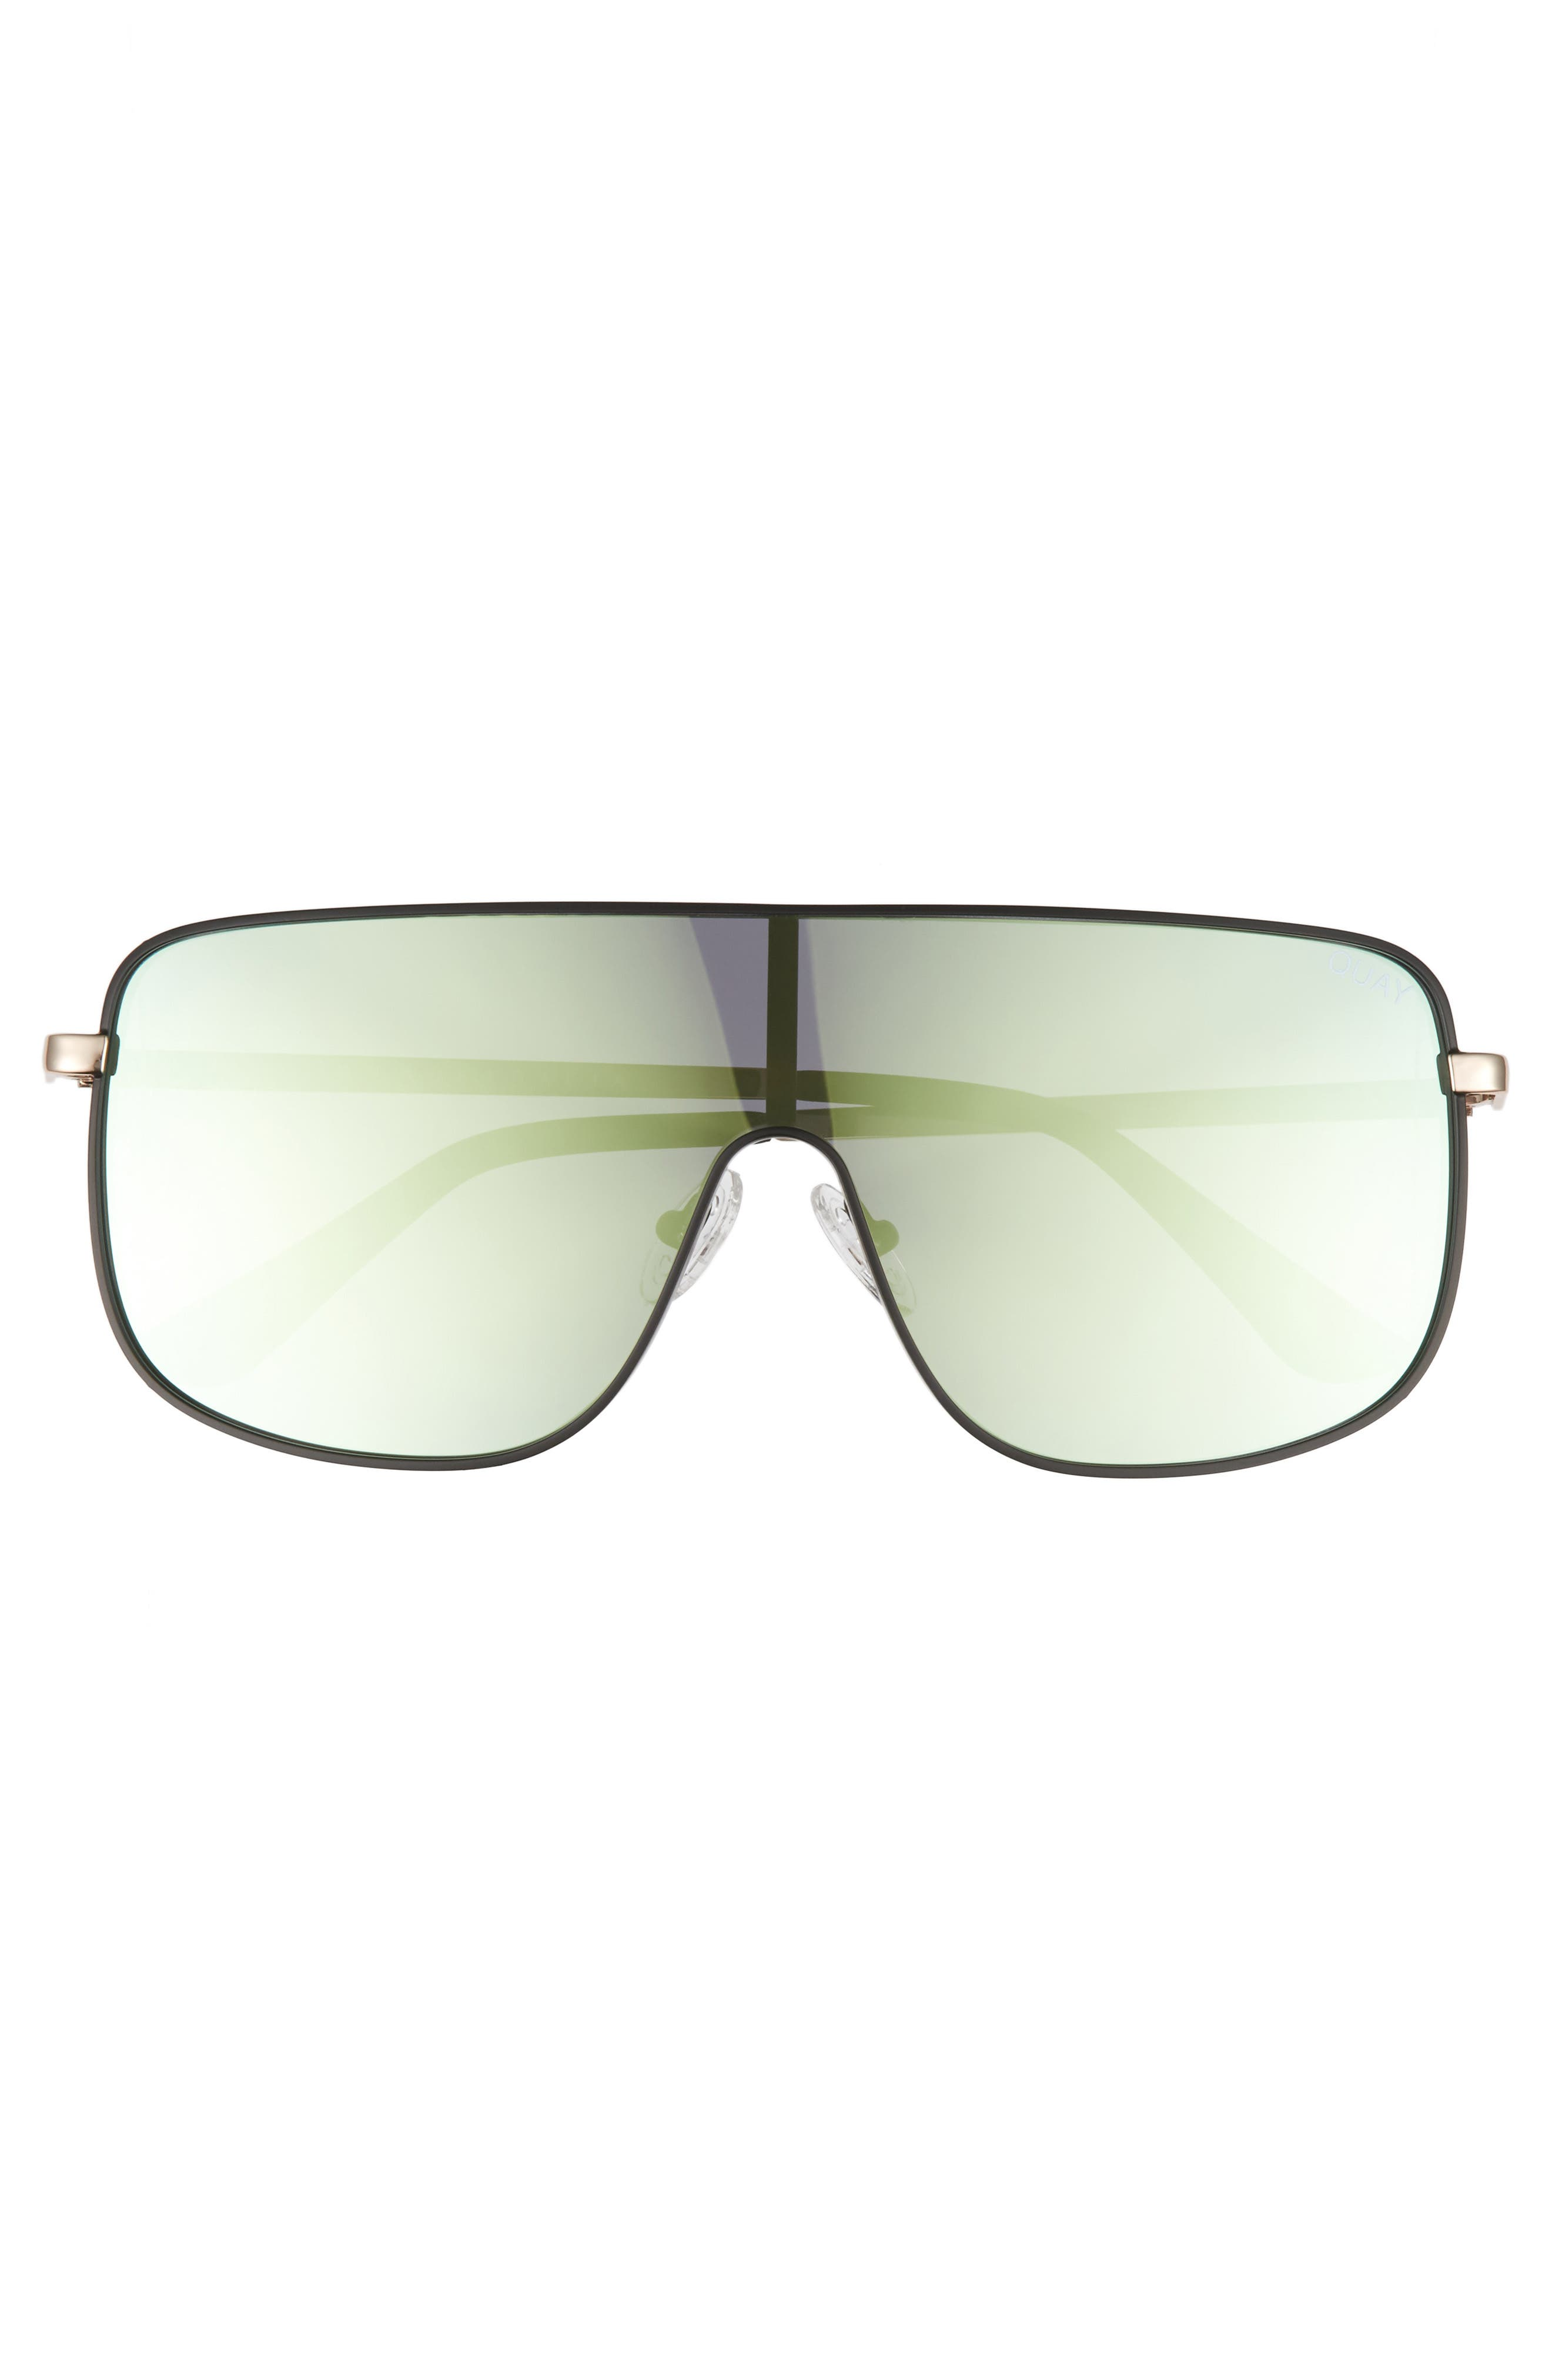 Unbothered 68mm Shield Sunglasses,                             Alternate thumbnail 5, color,